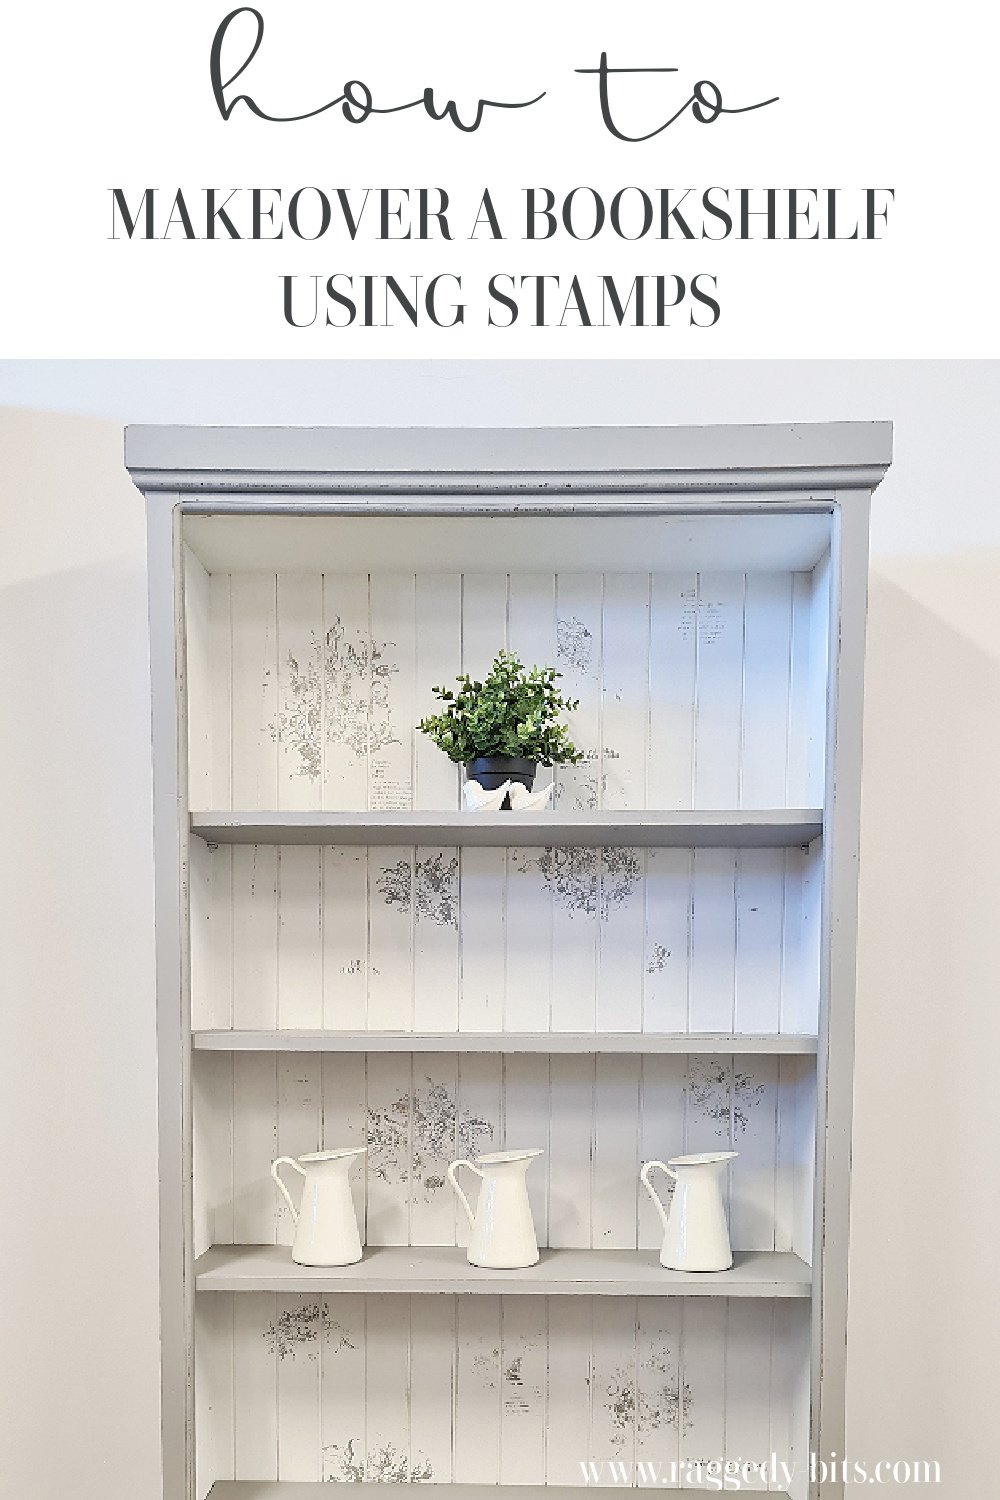 Taking a boring old brown bookcase, some Fusion Mineral Paint and IOD Stamps I'm sharing how you too can makeover a Vintage Farmhouse Bookshelf using Stamps | www.raggedy-bits.com| #ragggedybits #DIY #paintedfurniture #fusionmineralpaint #IOD #repurpose #upcycle